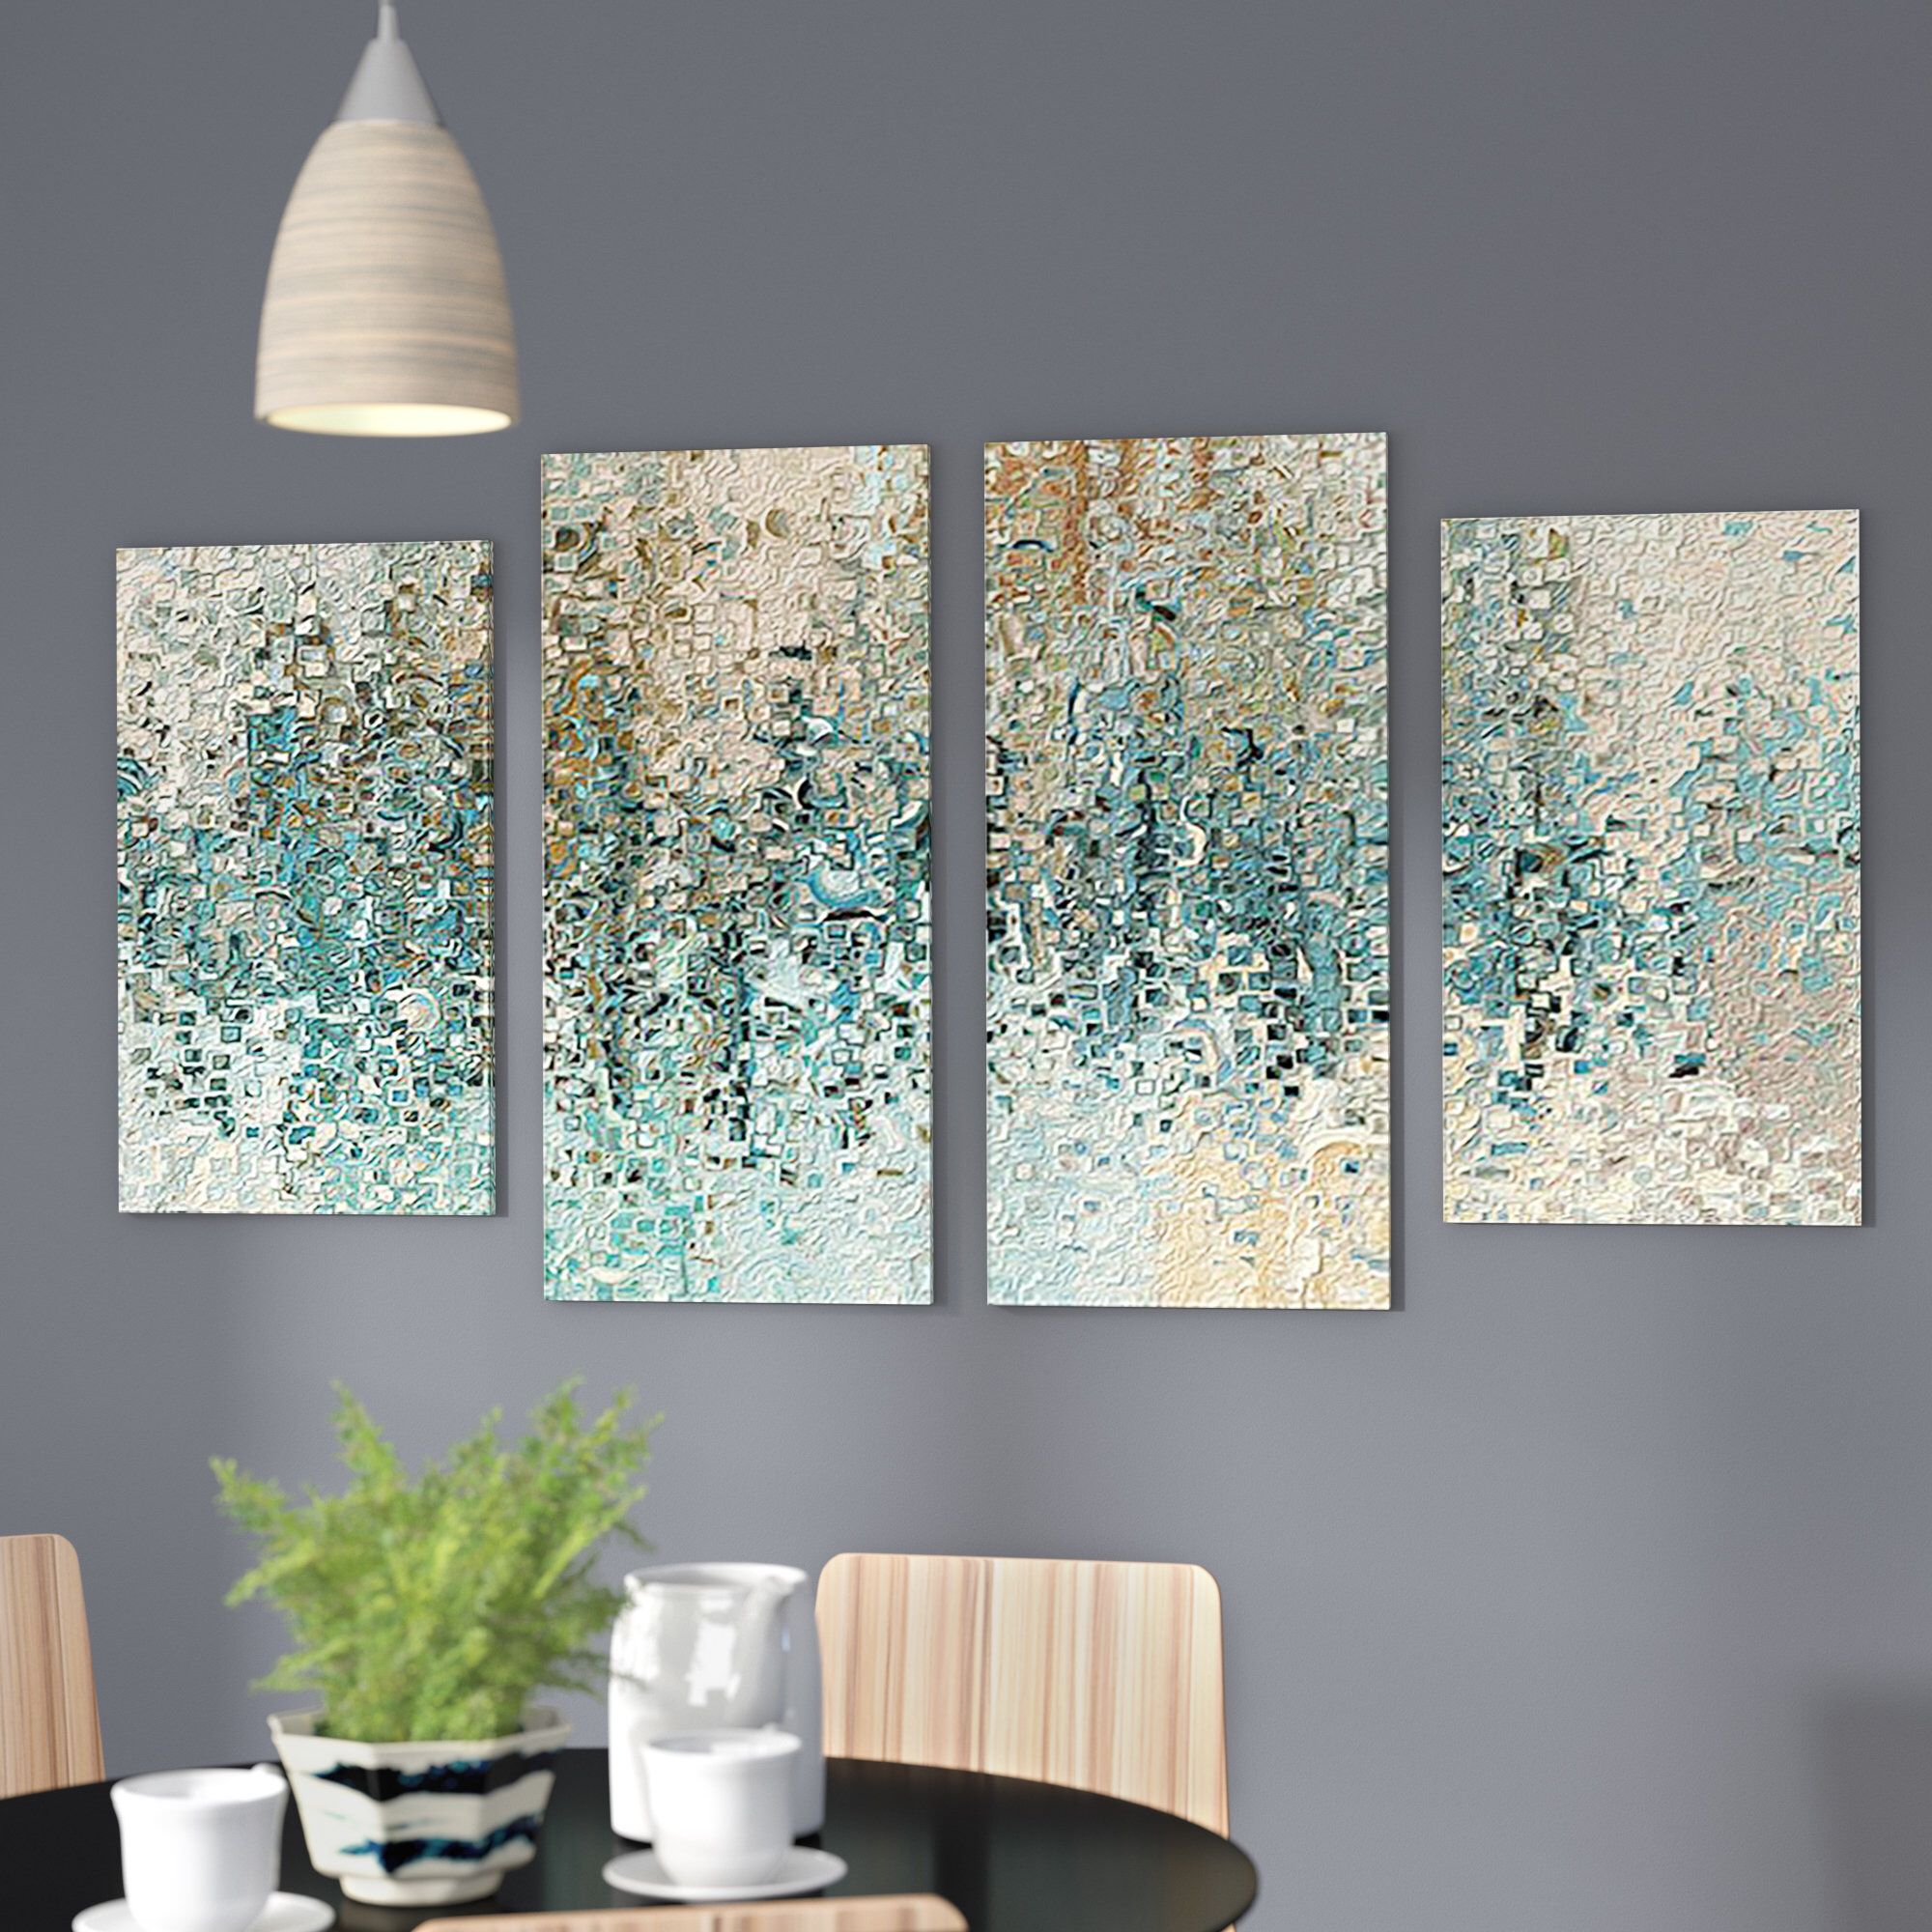 Best And Newest Wonderful World Wall Decor By Latitude Run For Revealed' 4 Piece Framed Gallery Wall Set On Canvas In  (View 3 of 20)